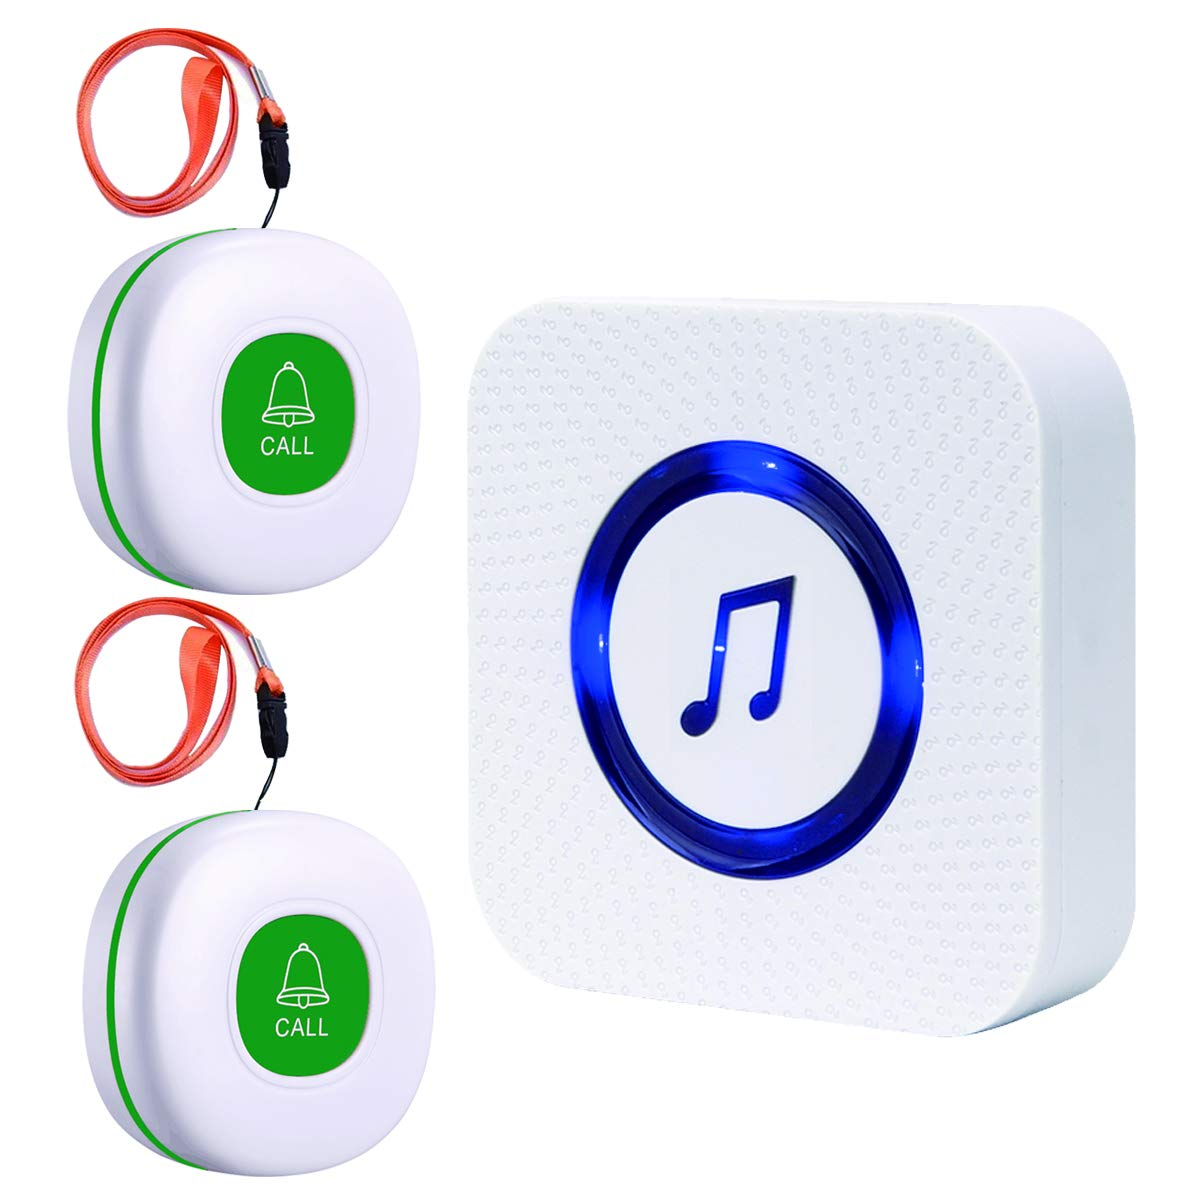 SanJie Caregiver Pager Wireless SOS Call Button Nursing Calling System for Elderly/Patient/Disabled at Home with 1 Receiver & 2 Waterproof Transmitters